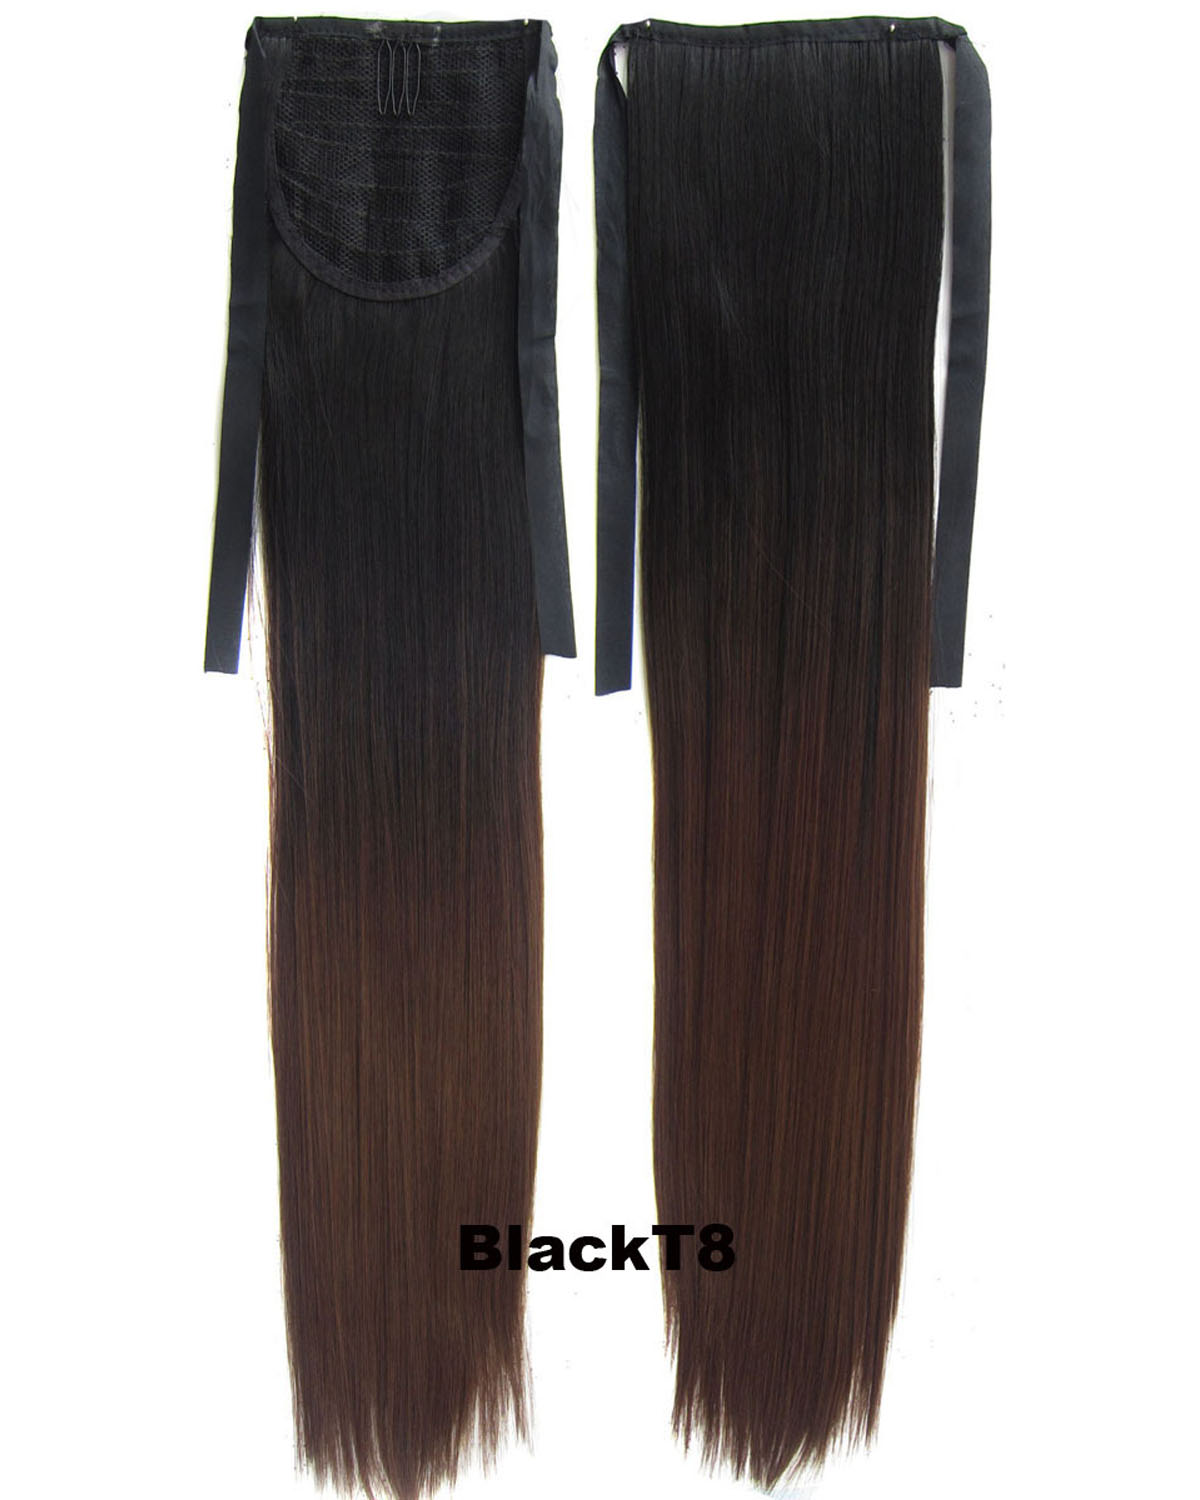 22 Inch Lady Straight and Long Lace/Ribbon Synthetic Hair Ponytail Ombre BlackT8 Hot-Sale